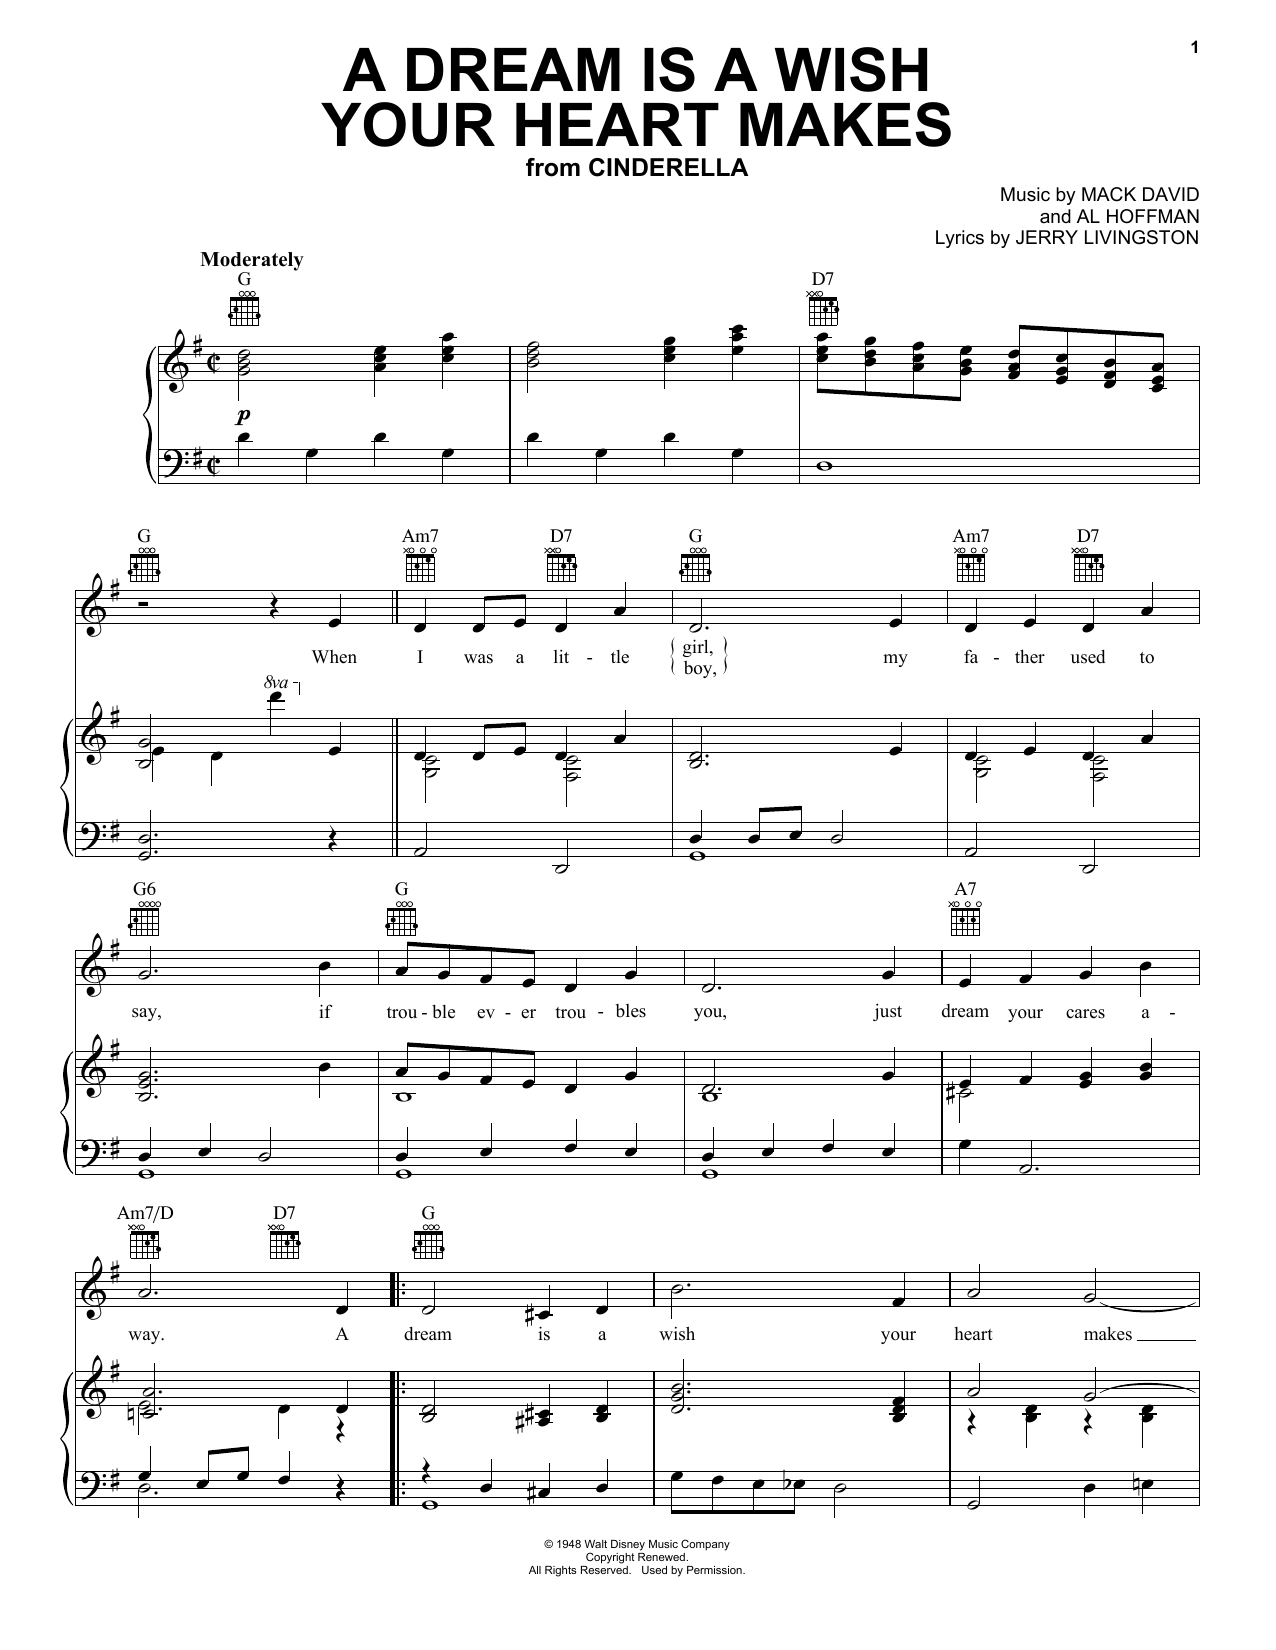 A Dream Is A Wish Your Heart Makes (from Disney's Cinderella) sheet music